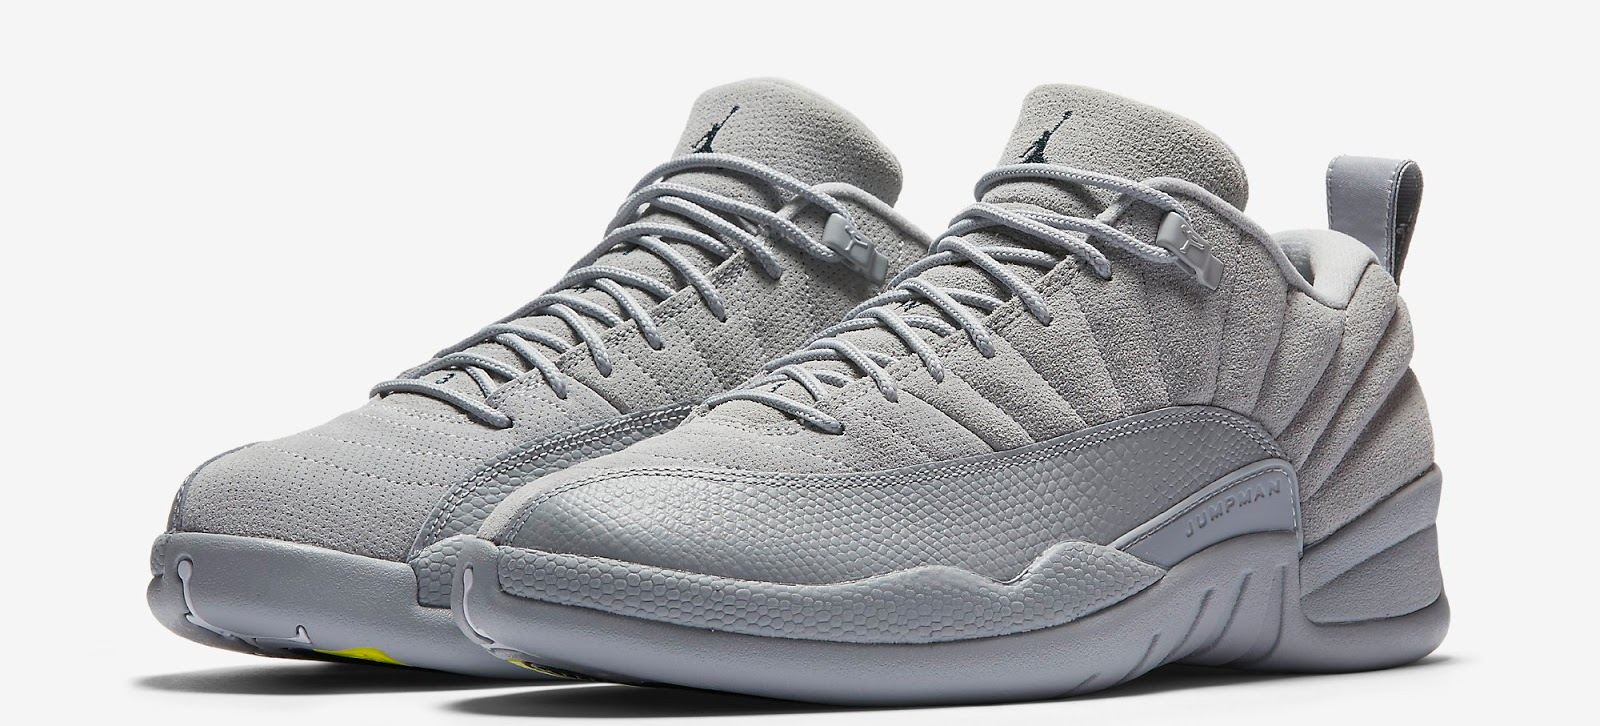 9ccd3dc15d7 The latest colorway of the Air Jordan 12 Retro Low hits stores this weekend.